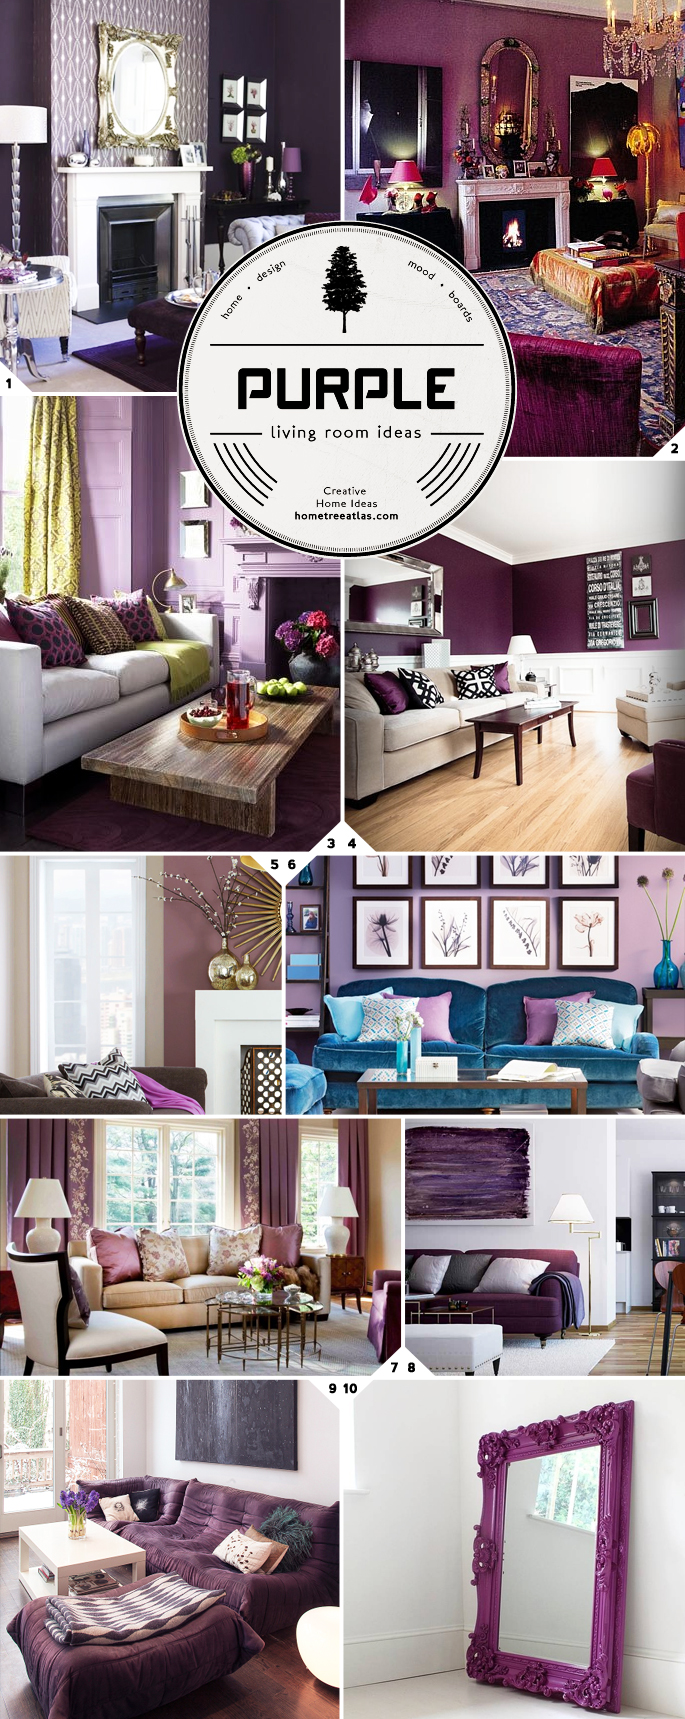 the color palette purple living room ideas and design tips home tree atlas. Black Bedroom Furniture Sets. Home Design Ideas